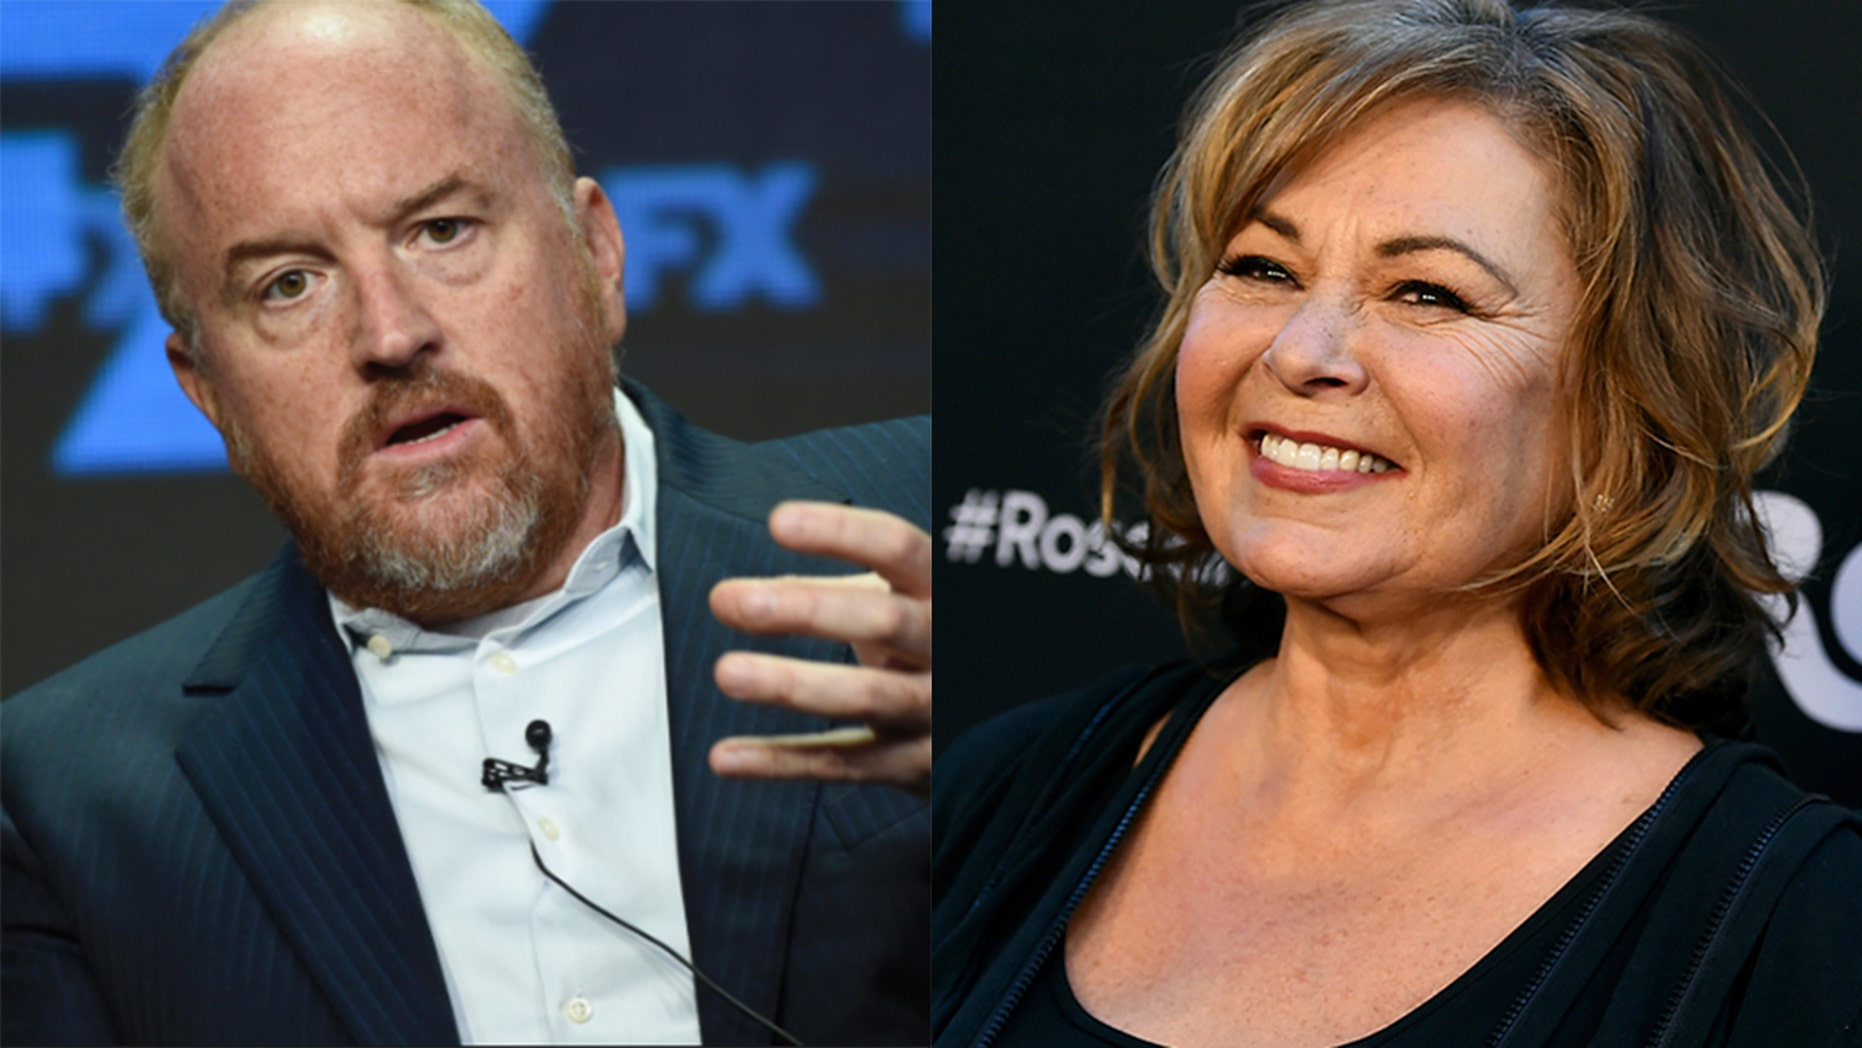 Louis C.K. reportedly called Roseanne after her firing at ABC.